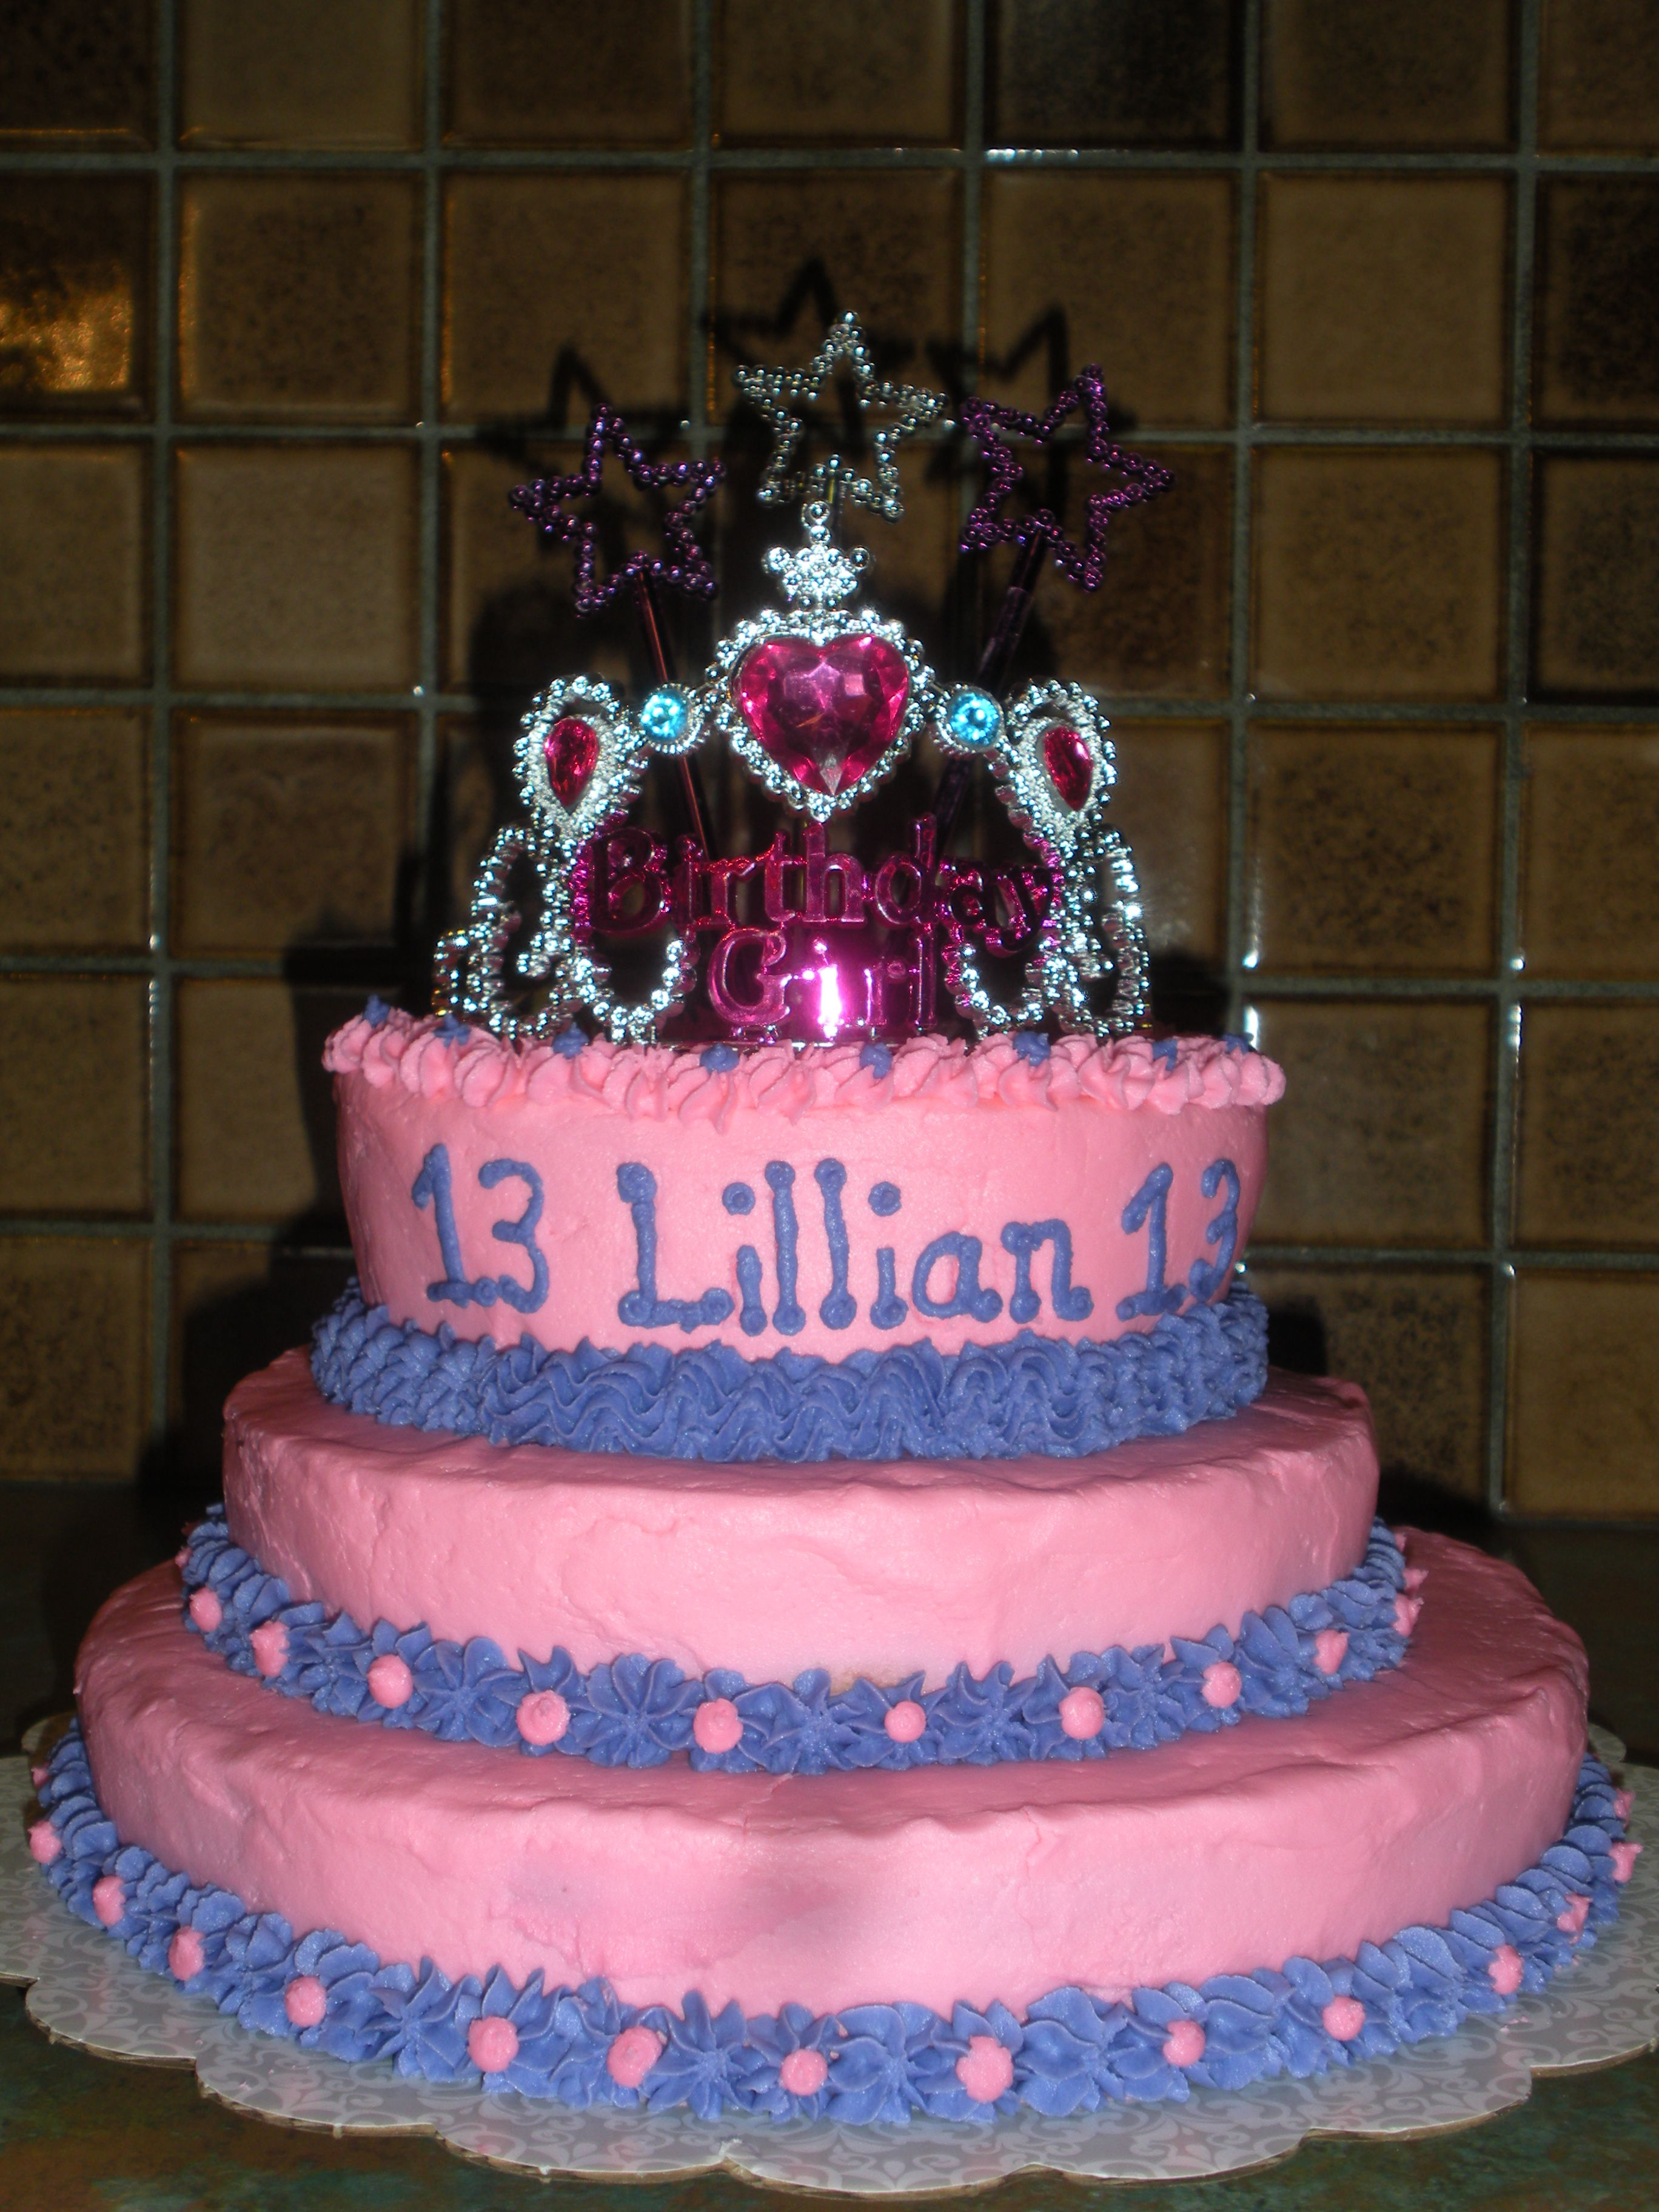 cake for 13 year old lillian birthday party ideas. Black Bedroom Furniture Sets. Home Design Ideas